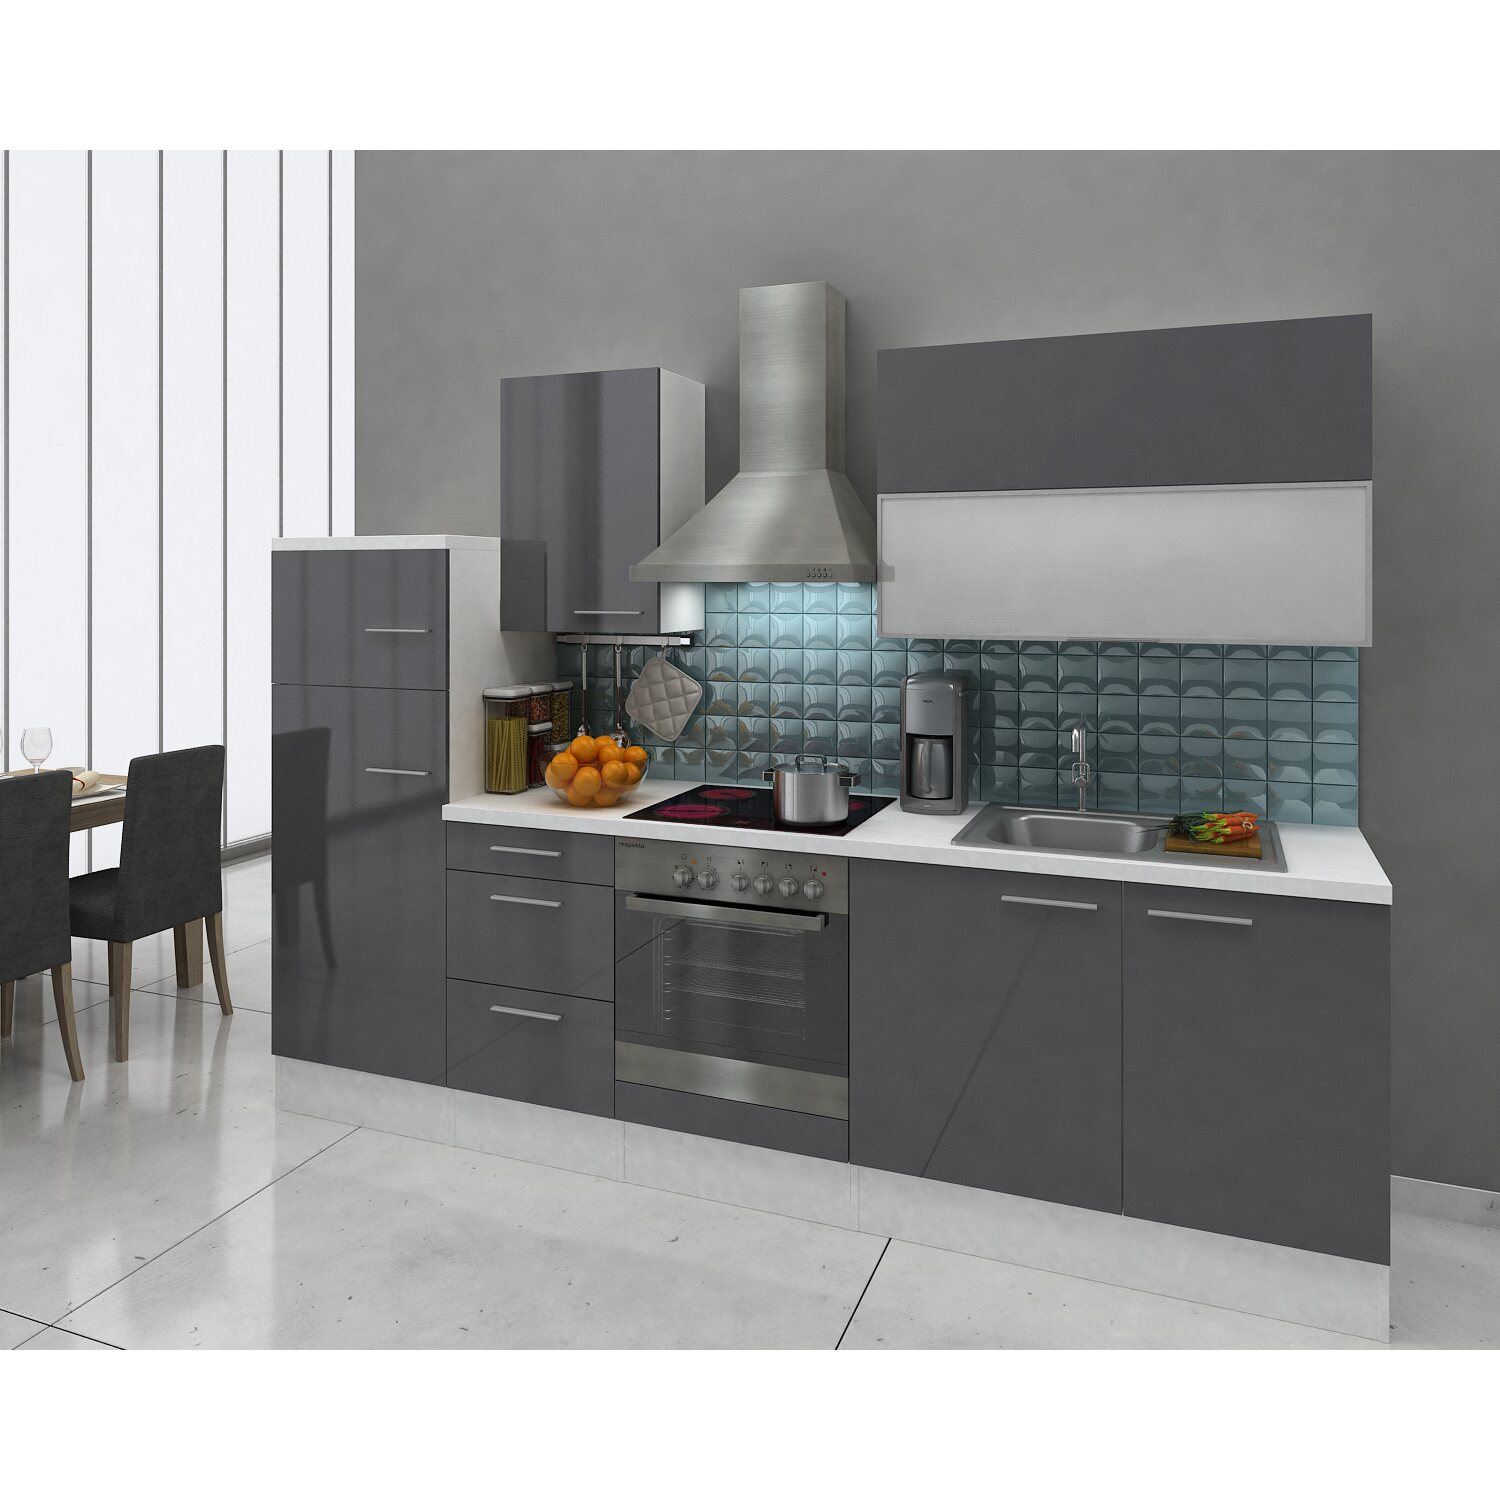 respekta premium k chenzeile rp280wgcgke 280 cm grau wei kaufen bei obi. Black Bedroom Furniture Sets. Home Design Ideas